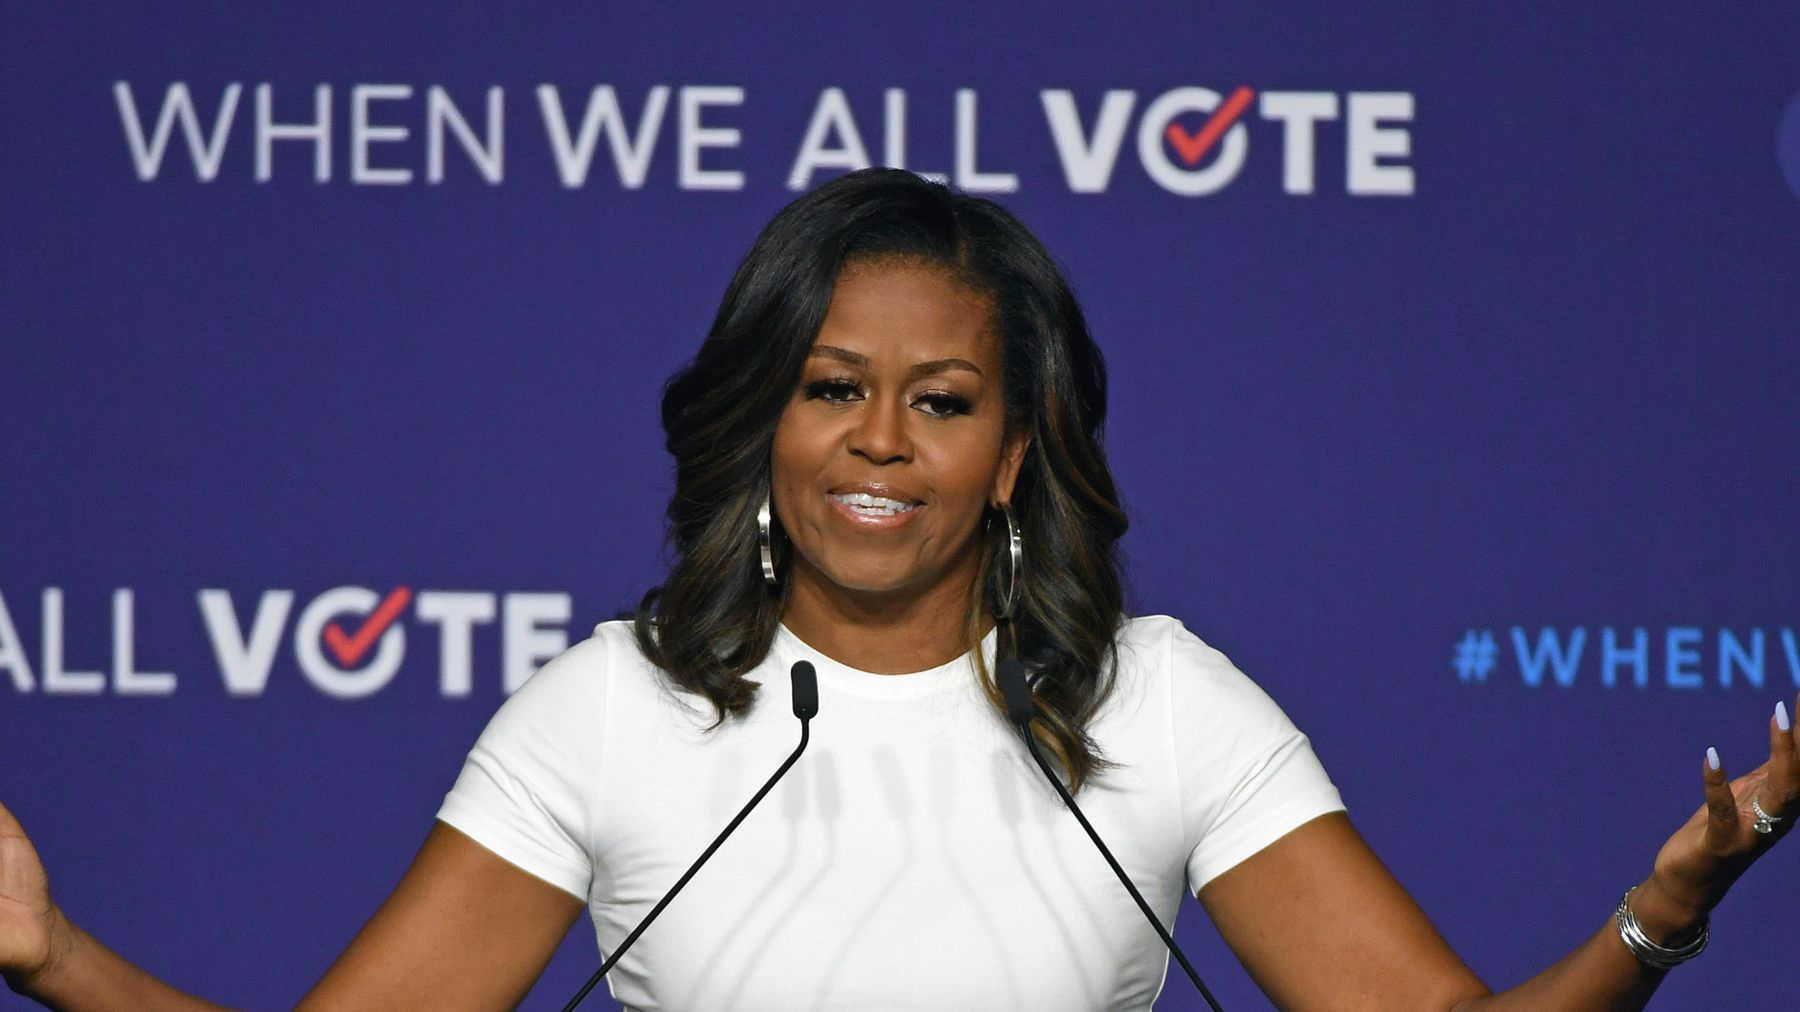 Michelle Obama, Tom Hanks, Janelle Monáe, Chris Paul, Lin-Manuel Miranda, Faith Hill, and Tim McGraw are calling on all of us to register and vote. Register to vote and volunteer at www.whenweallvote.org. (courtesy photo)